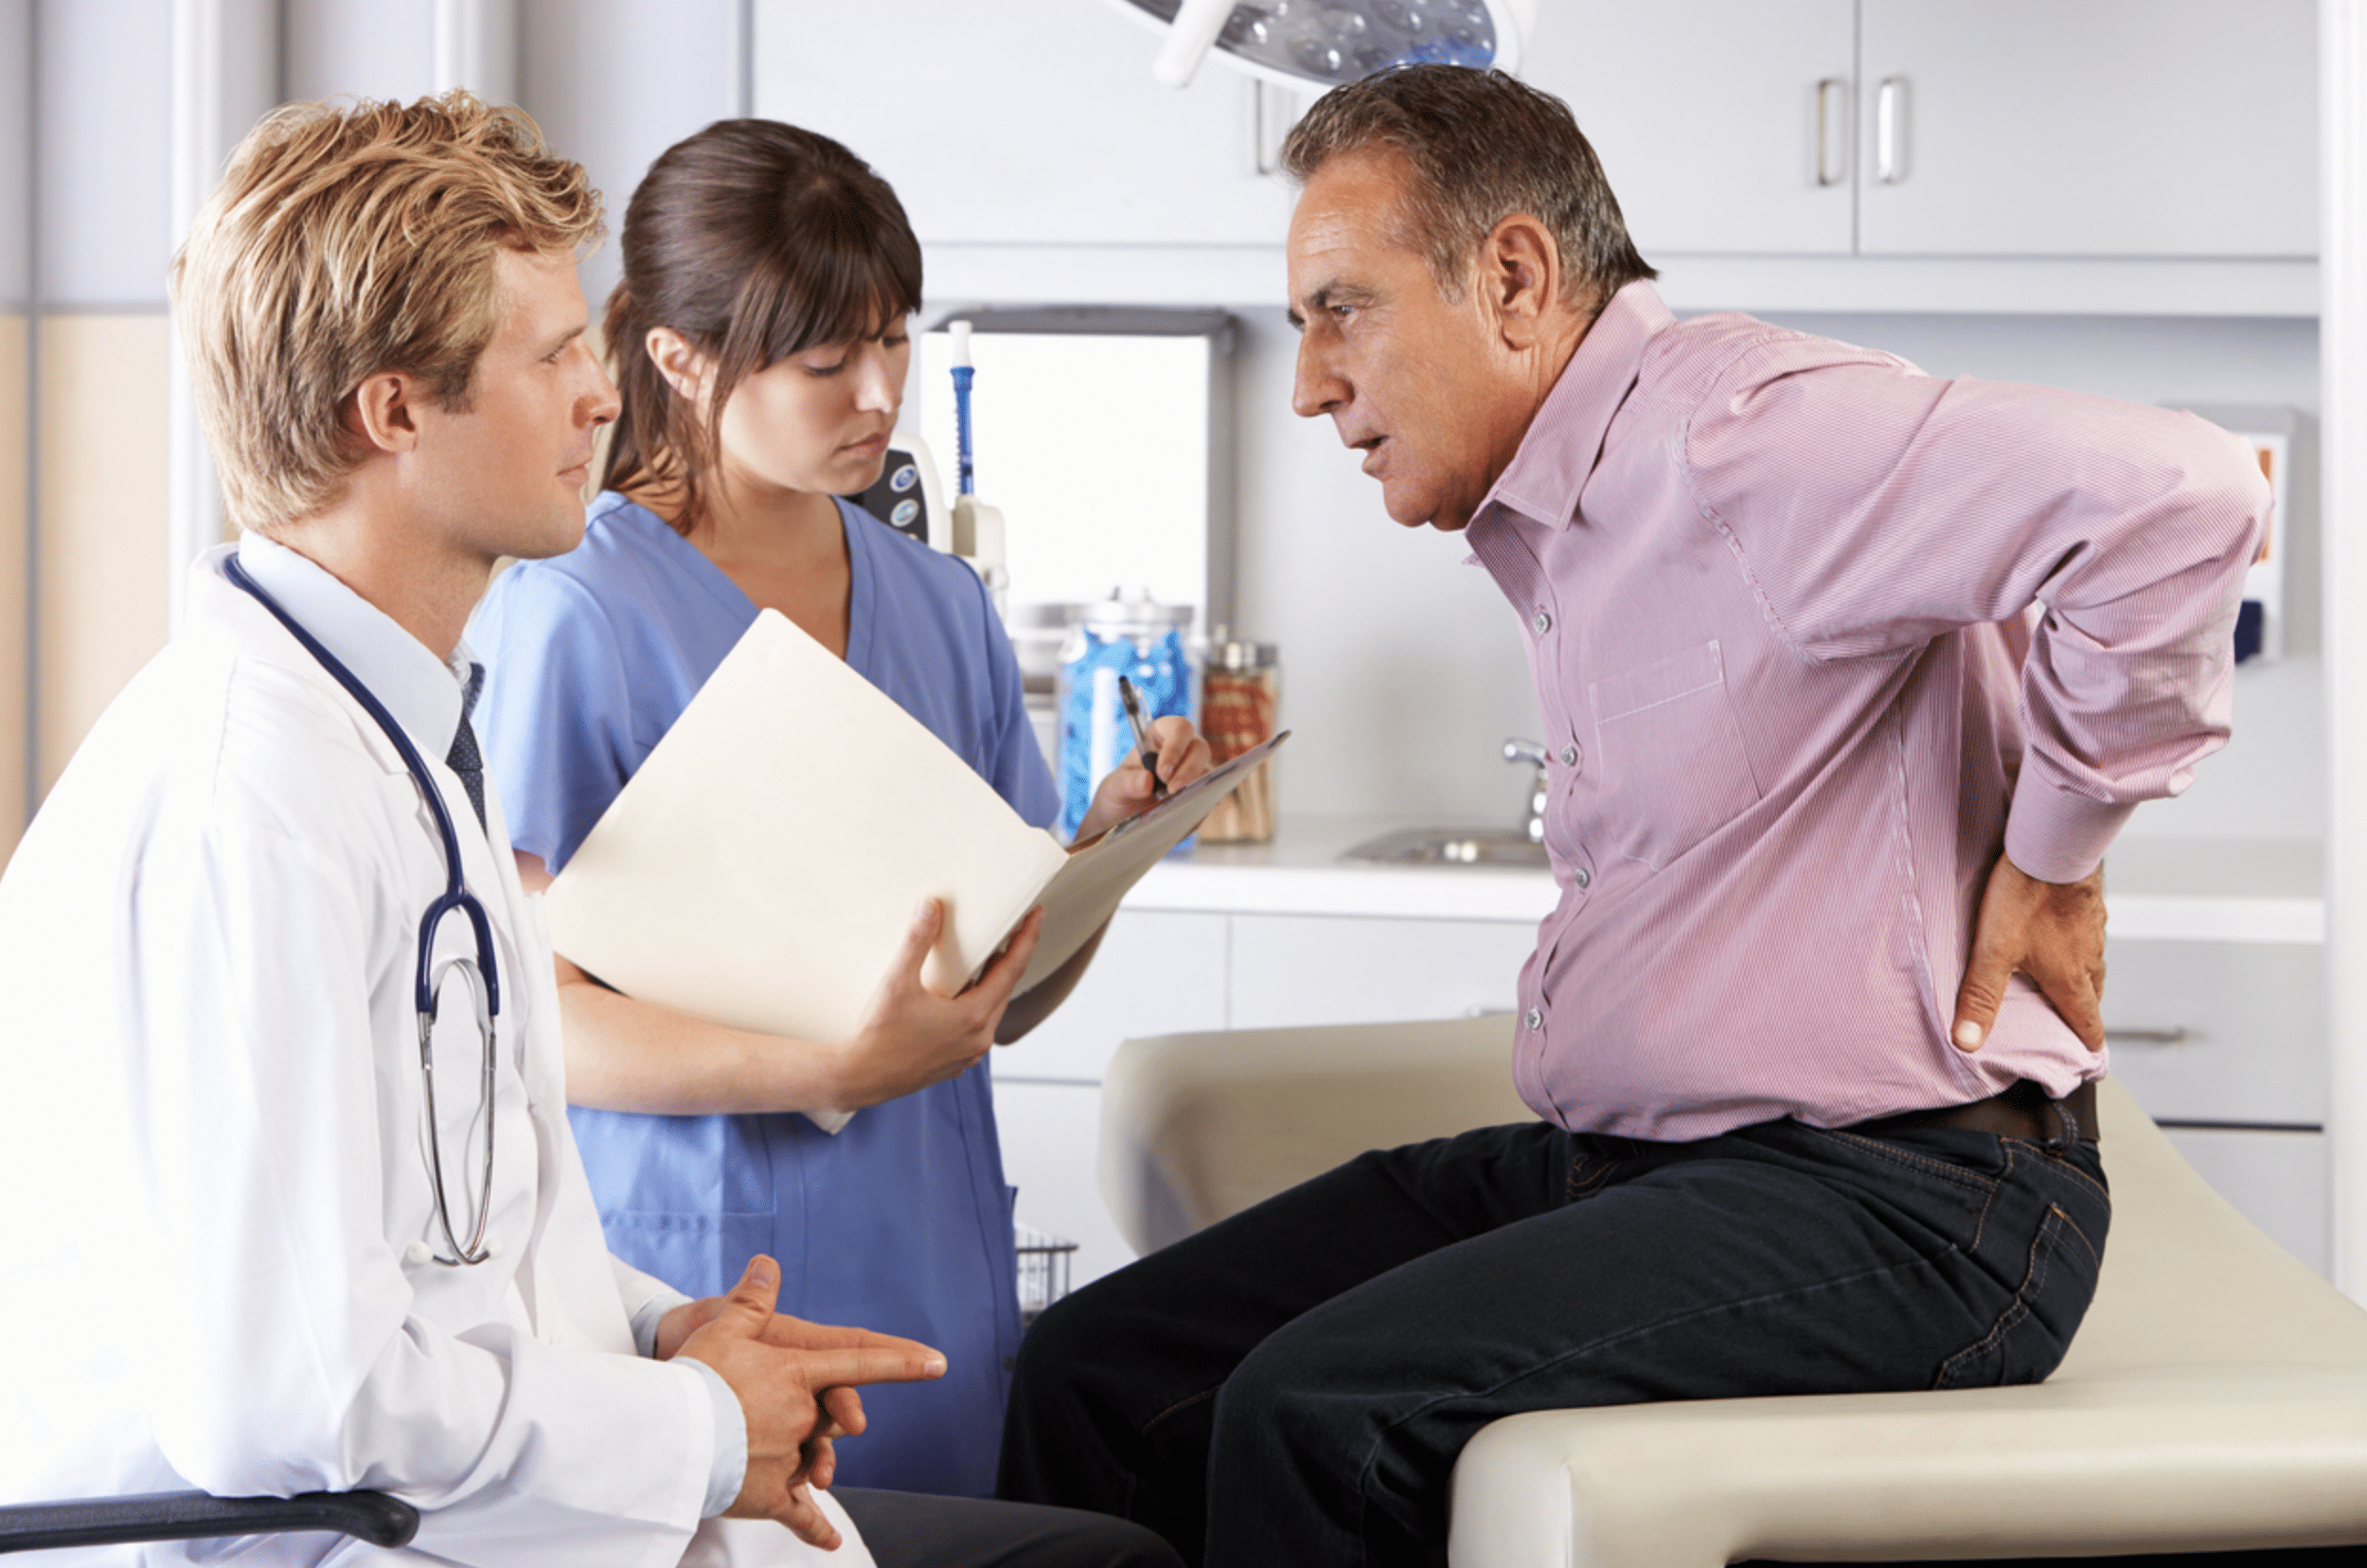 medical consultation with doctors